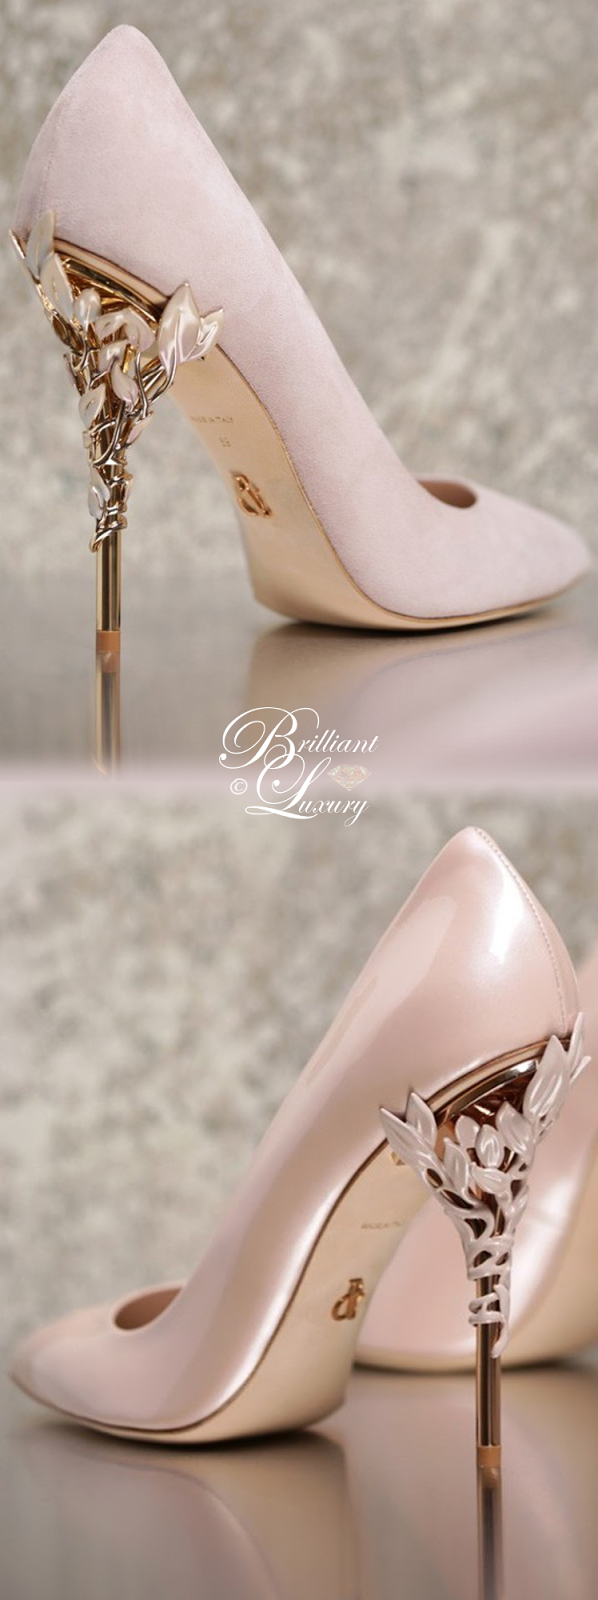 Cinderella shoes, Prom shoes, Heels